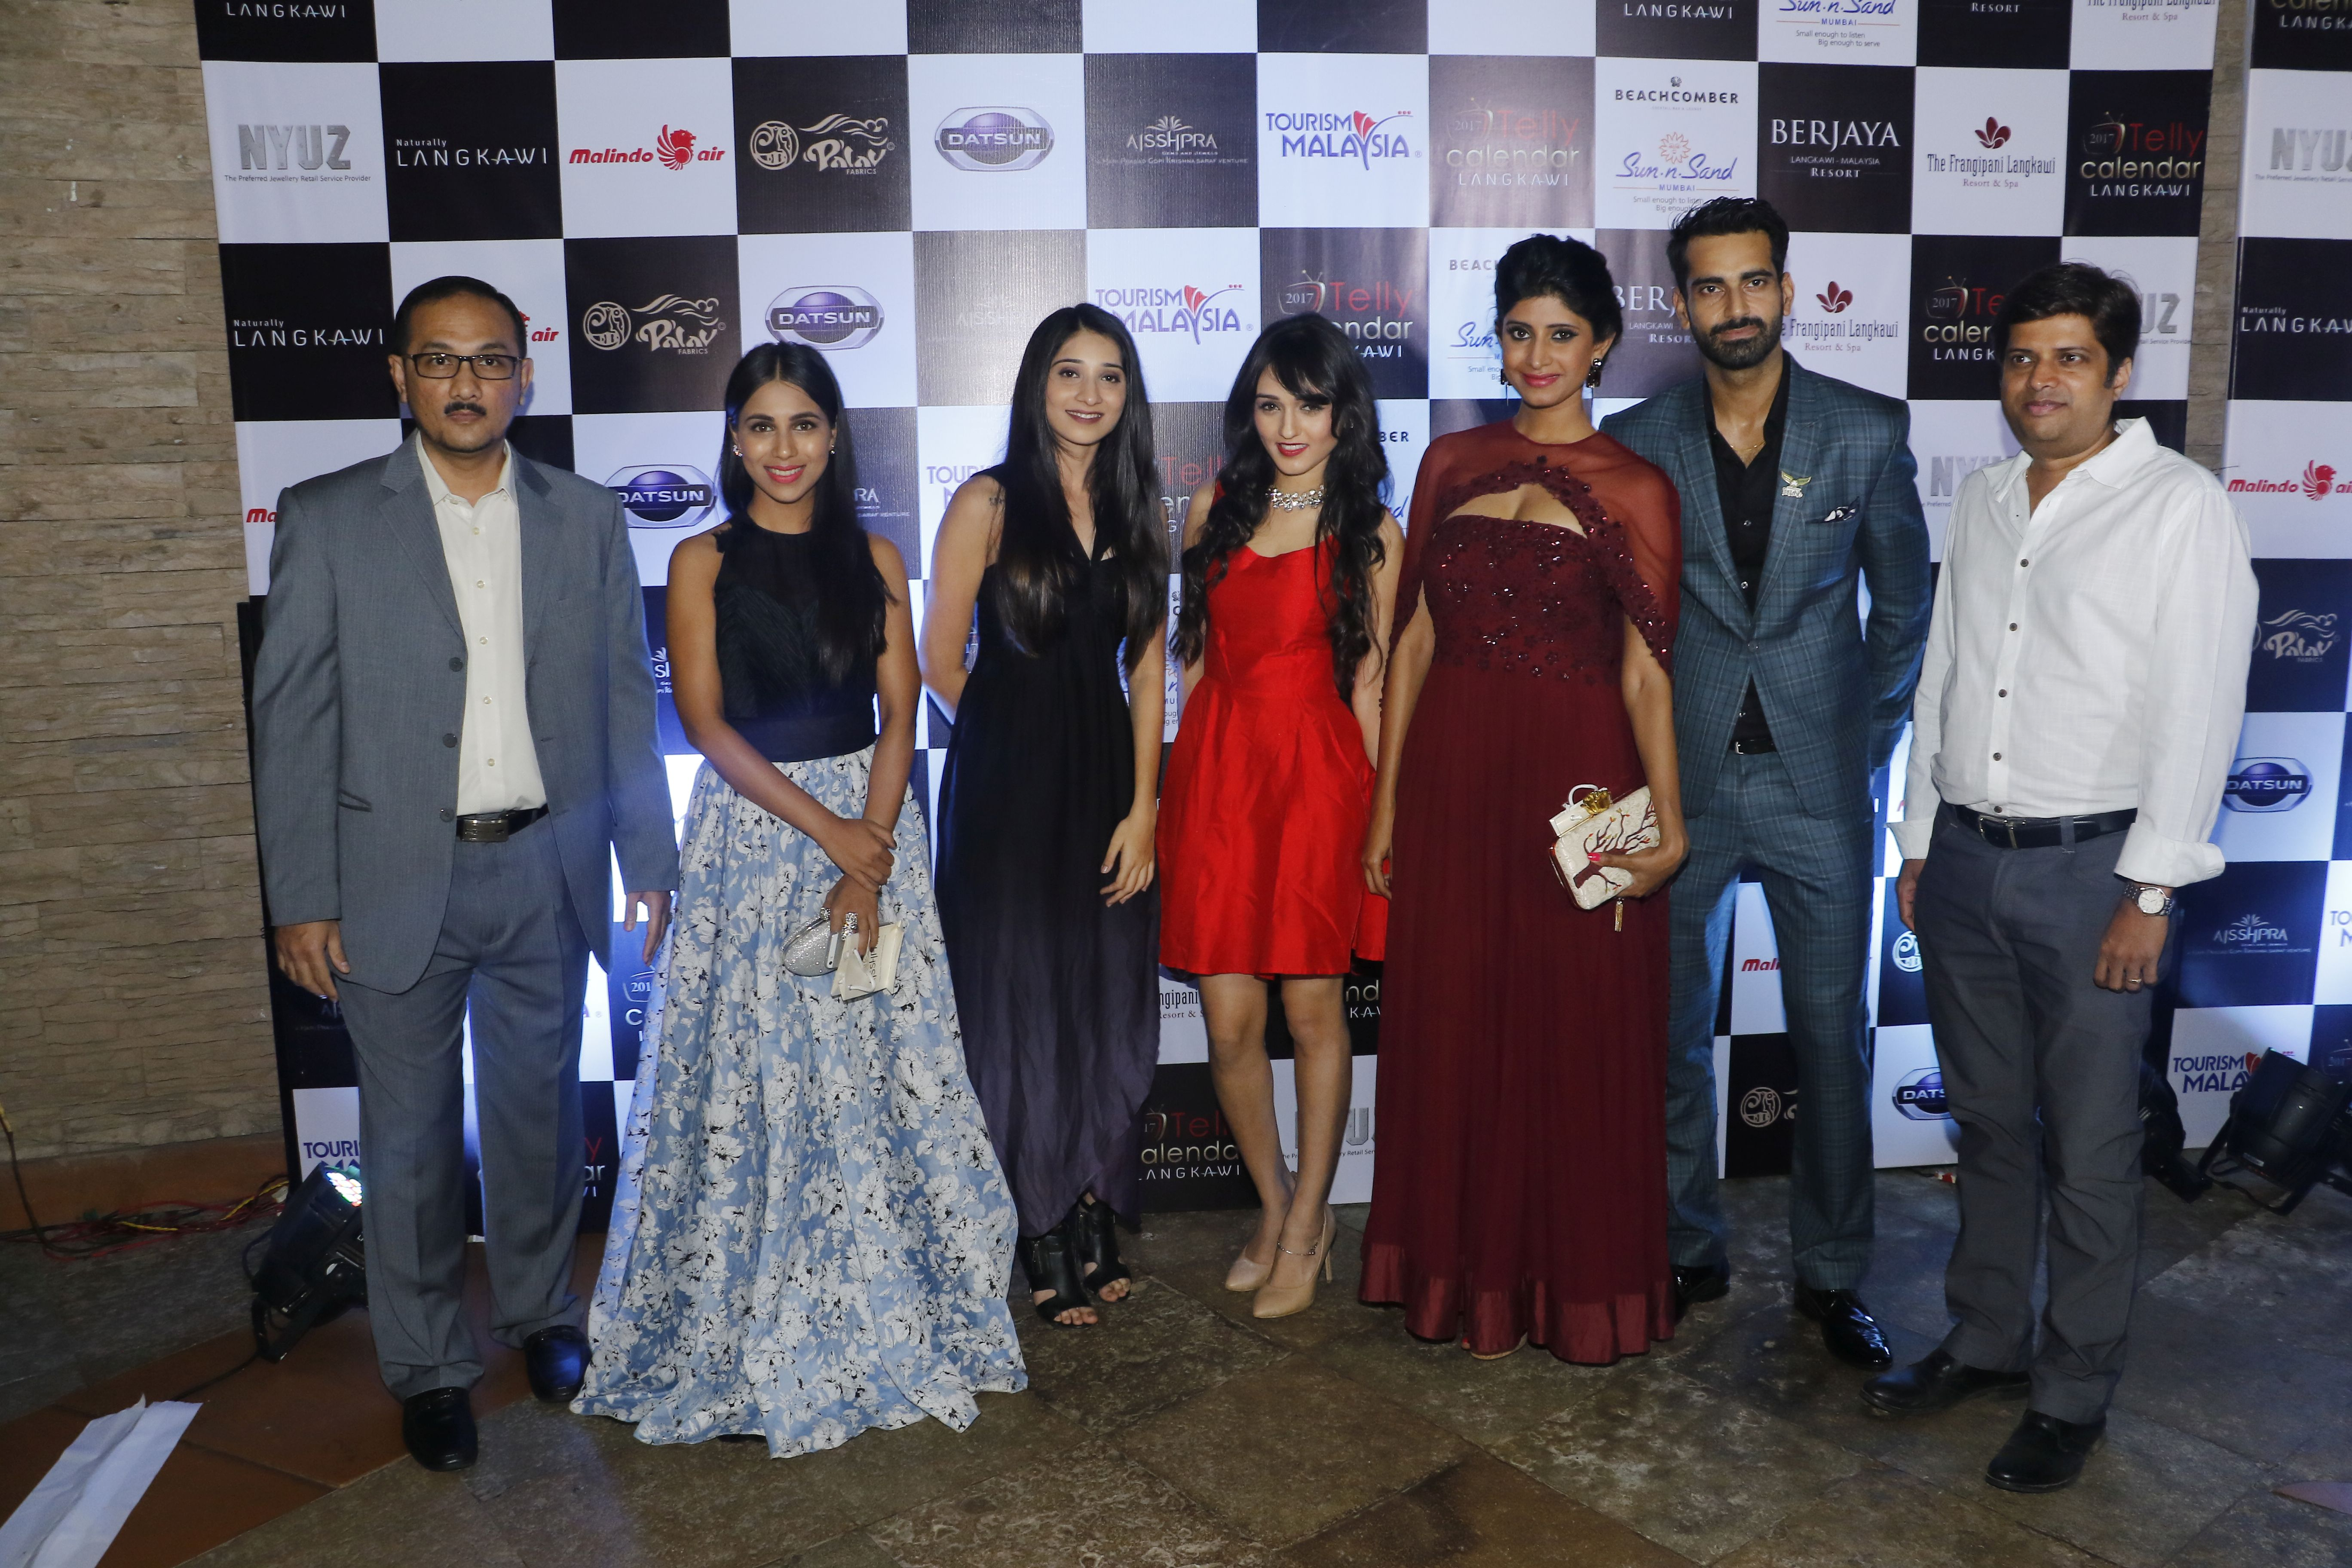 representatives-from-tourism-malaysia-and-mr-sunny-arora-director-marinating-films-along-with-the-calendar-girls-the-launch-of-telly-calendar-2017-langkawi